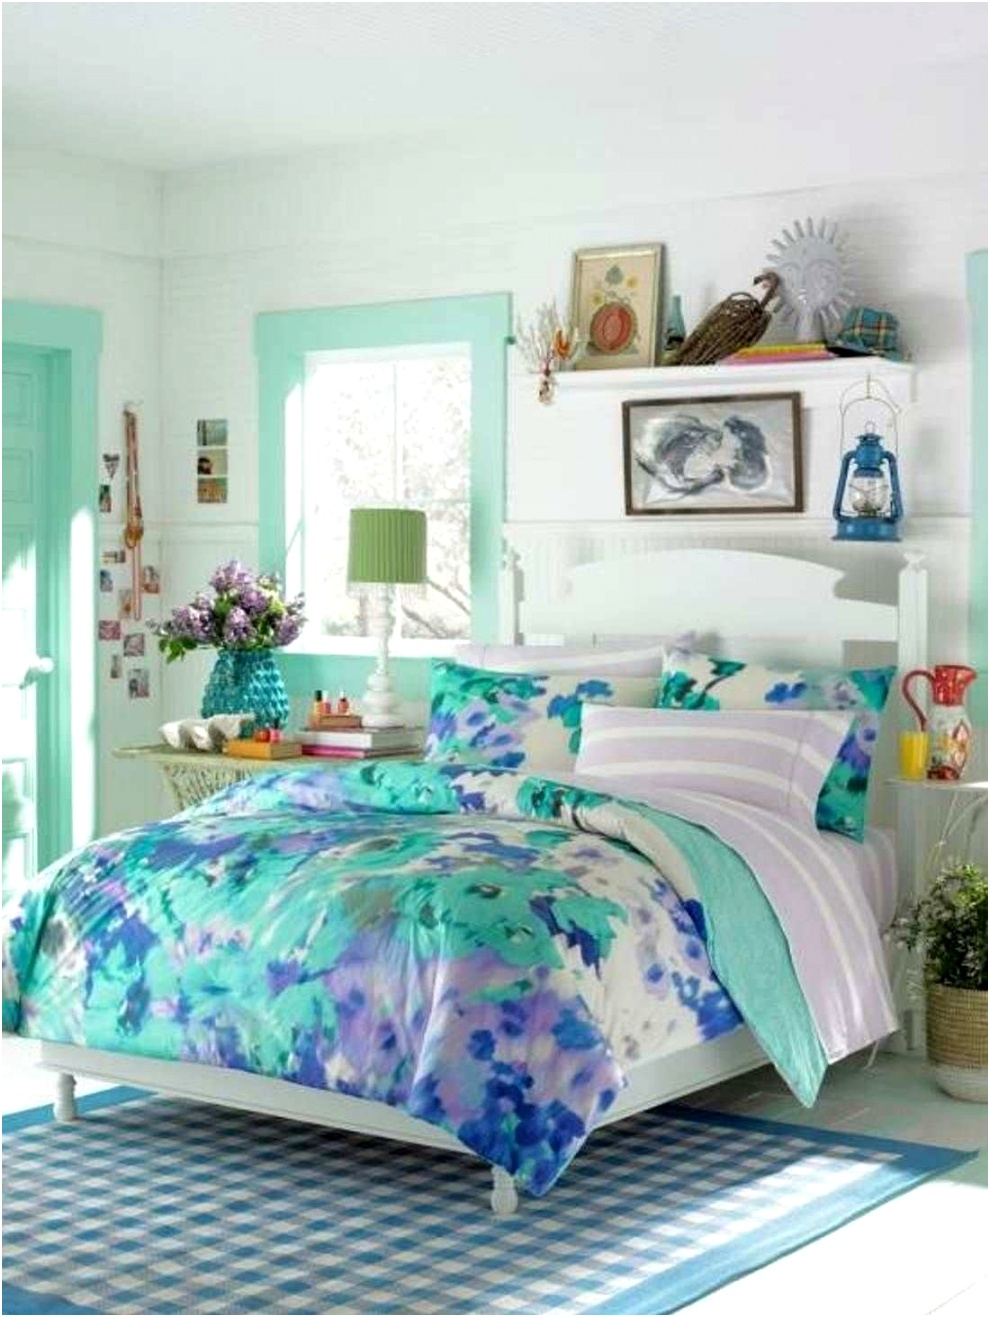 Blue Brown Themed For Tween Boys Bedroom Ideas top girls bedroom ideas blue with teenage girl bedroom Ideas Boys Tween Themed For Blue Brown Bedroom